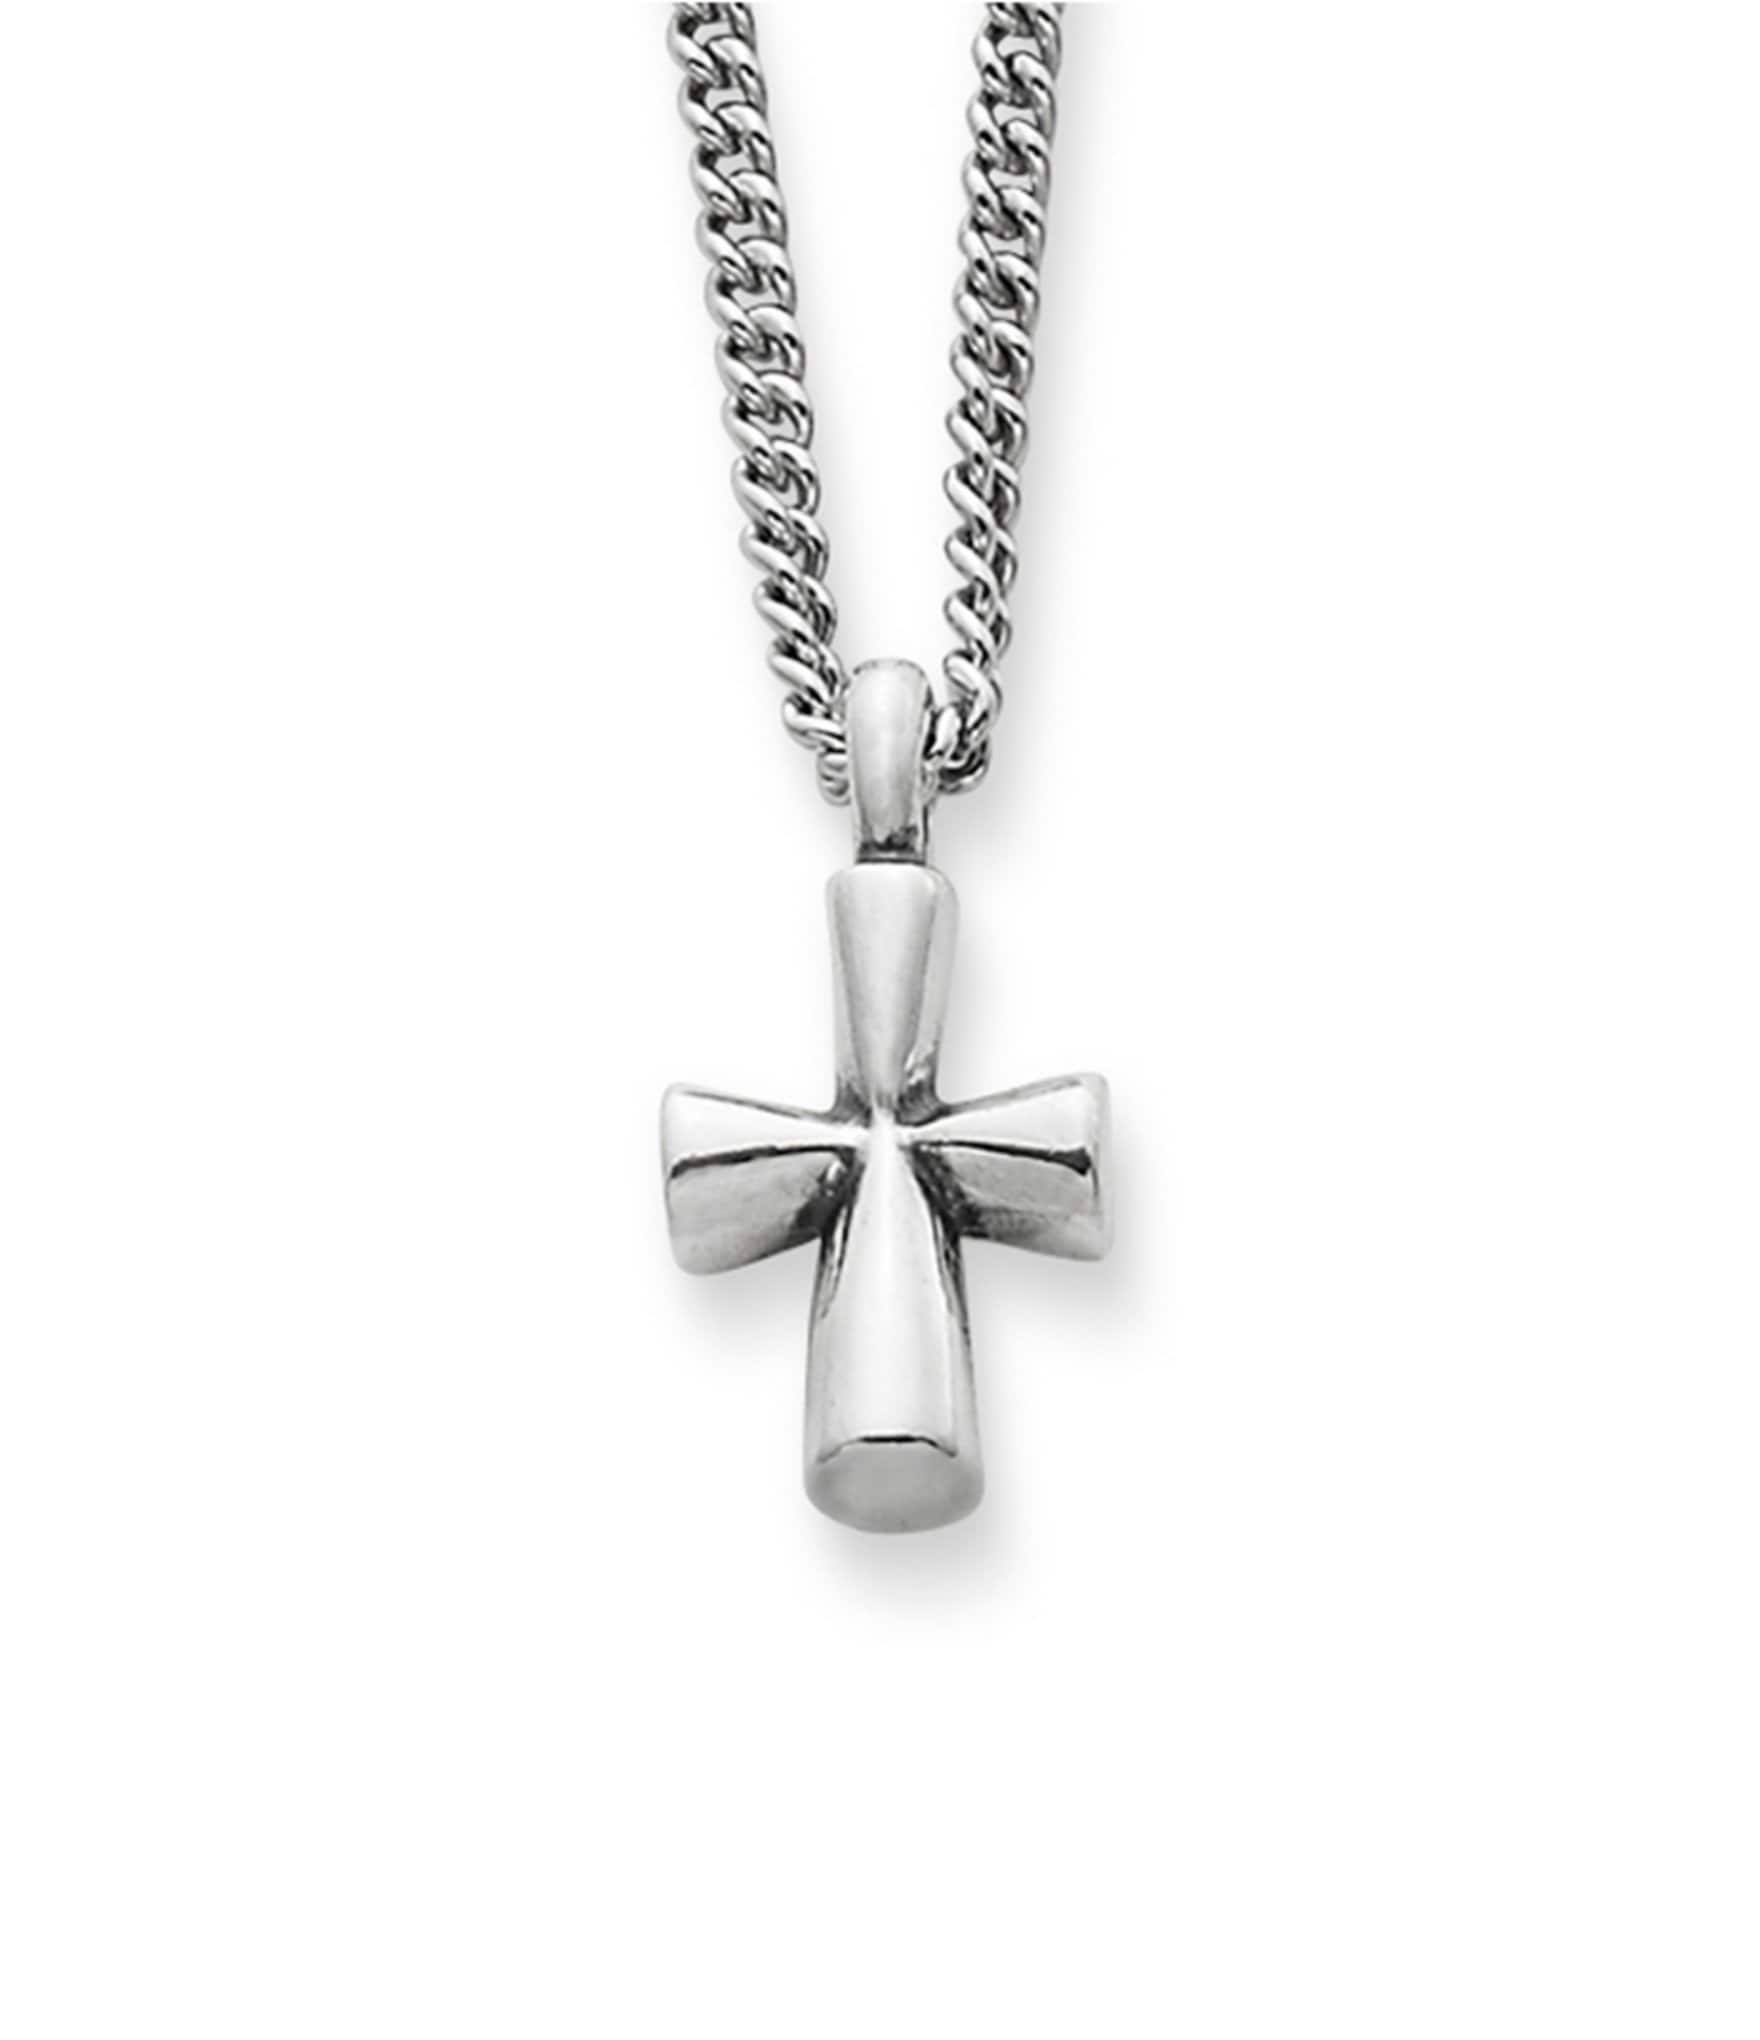 pendant mens men cross baseball bliss free for necklace shipping silver